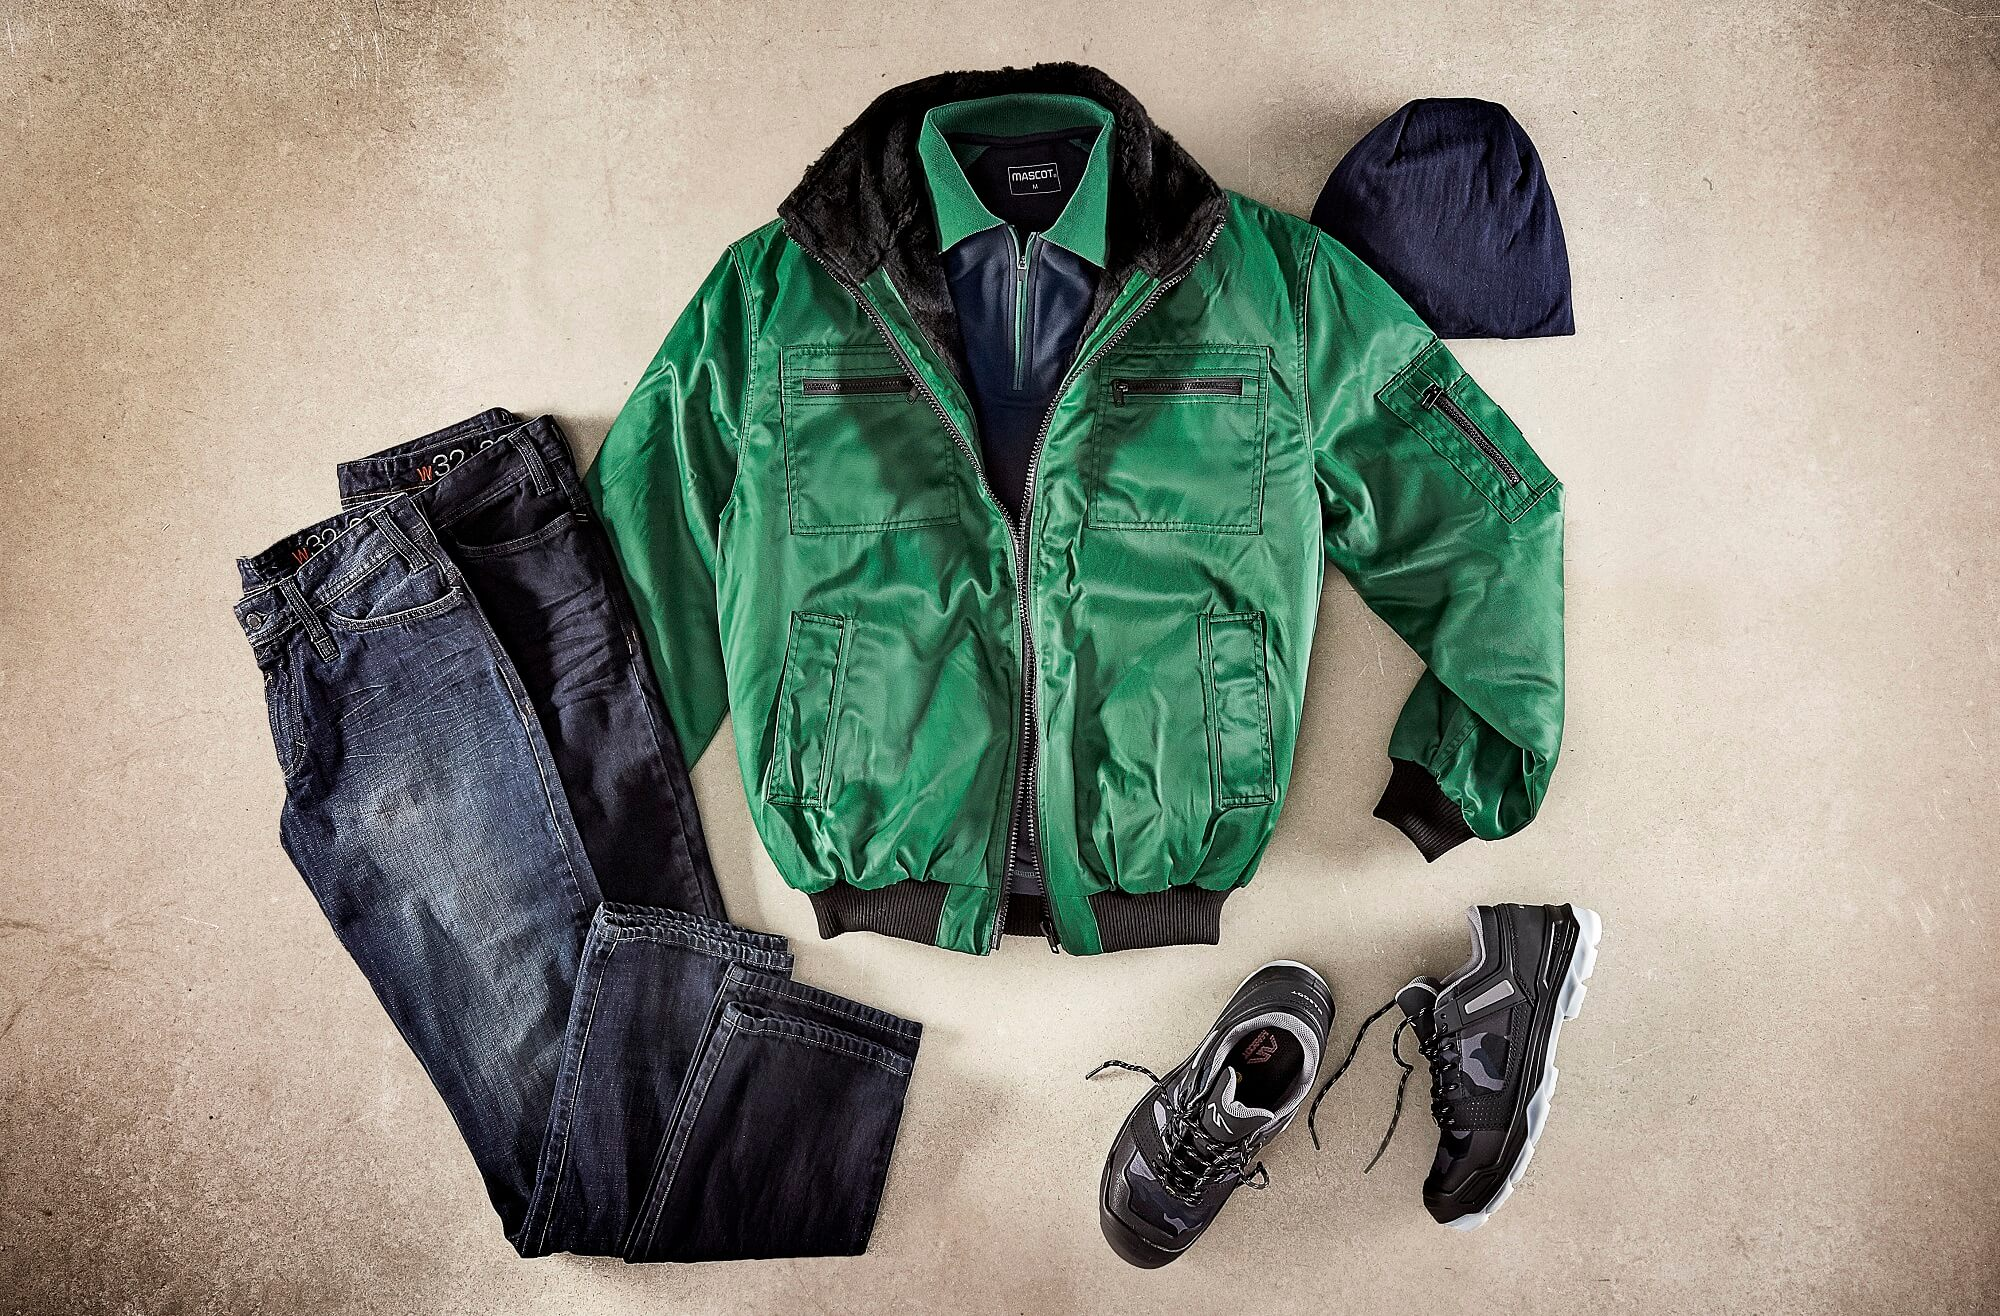 Pilot Jacket, Jeans & Work Polo Shirt - Green - Collage